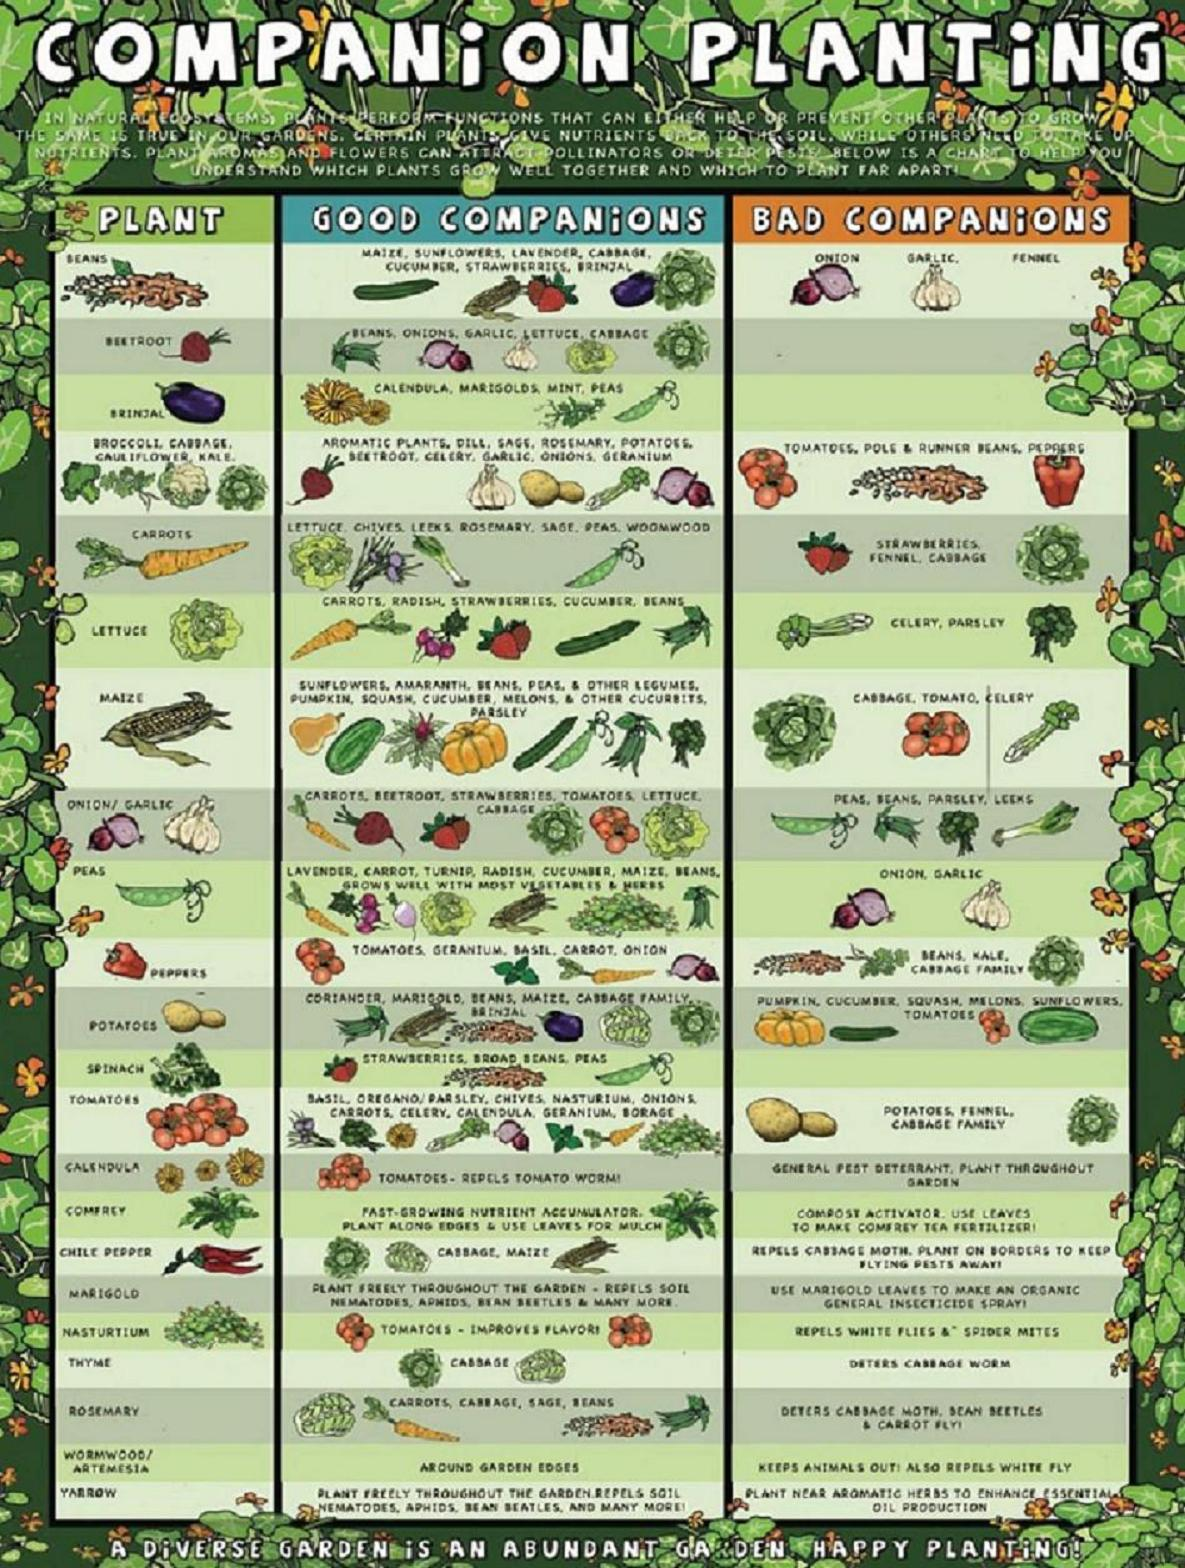 Superb Gardening Companion Planting Chart. Chart Courtesy Of: RealFarmacy.com